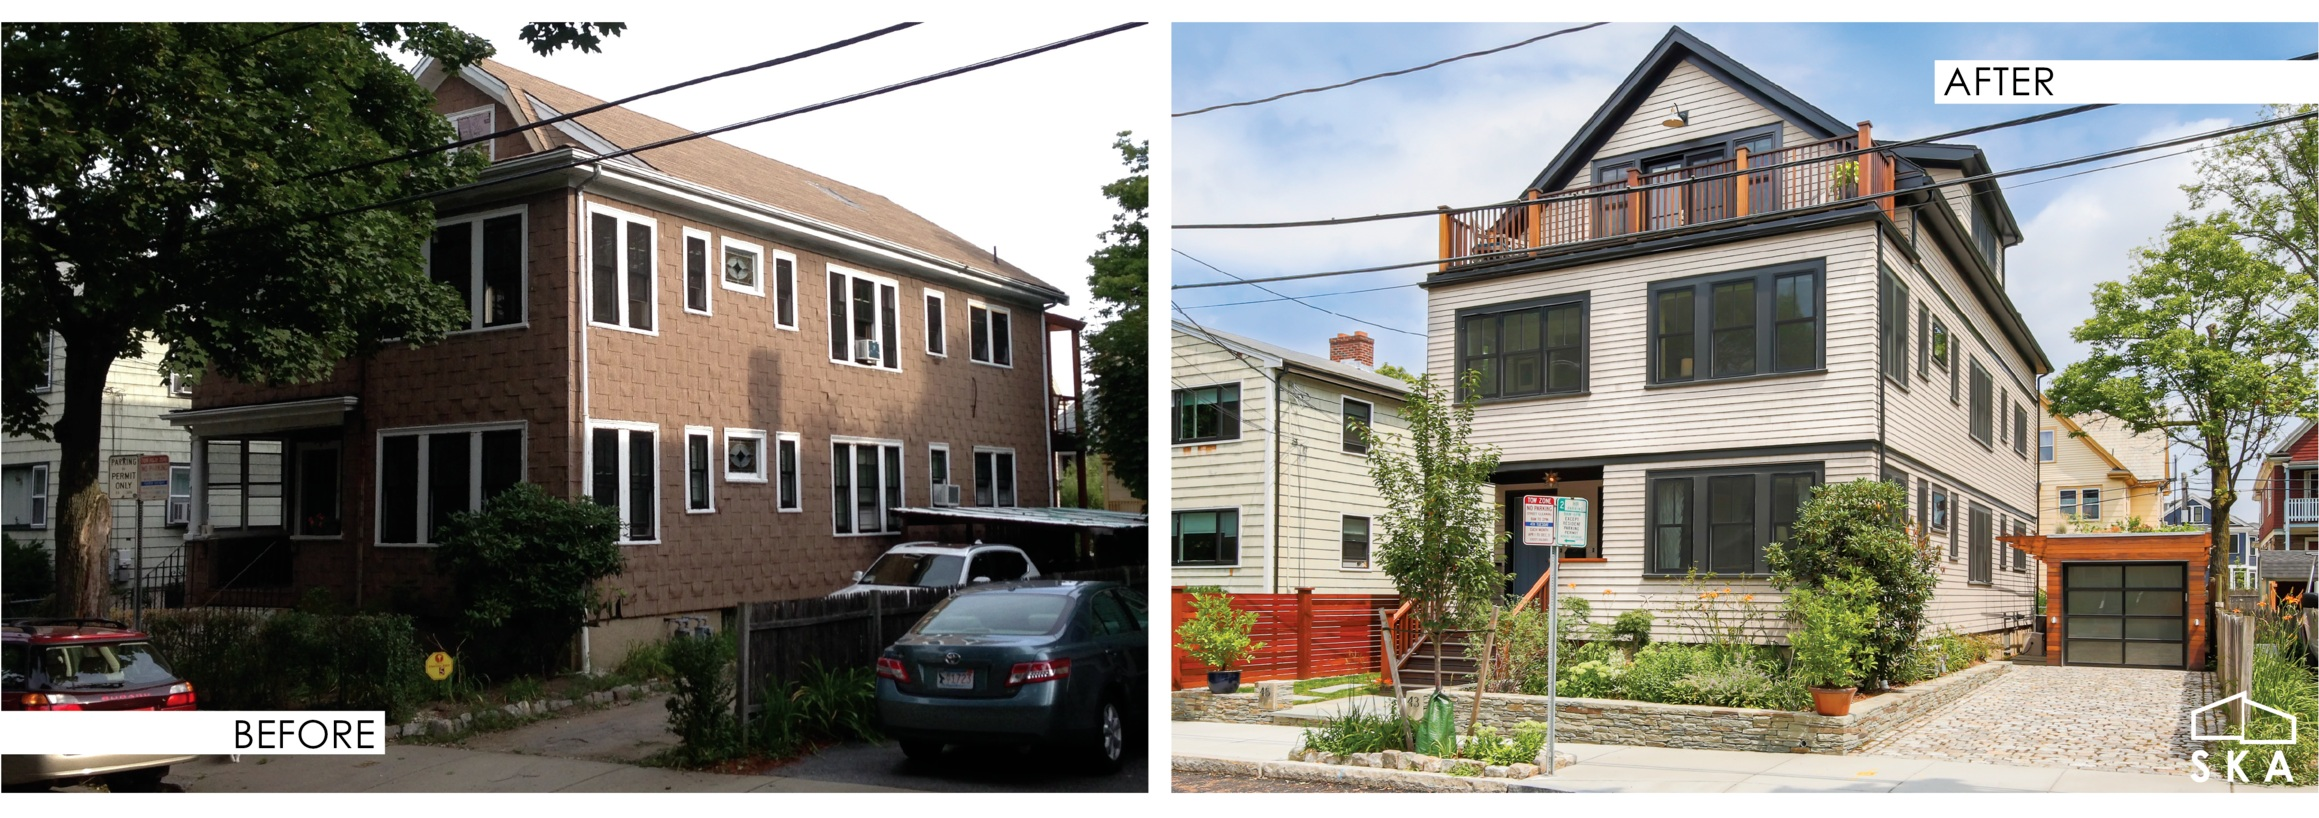 Before+After_Huron_Village.png